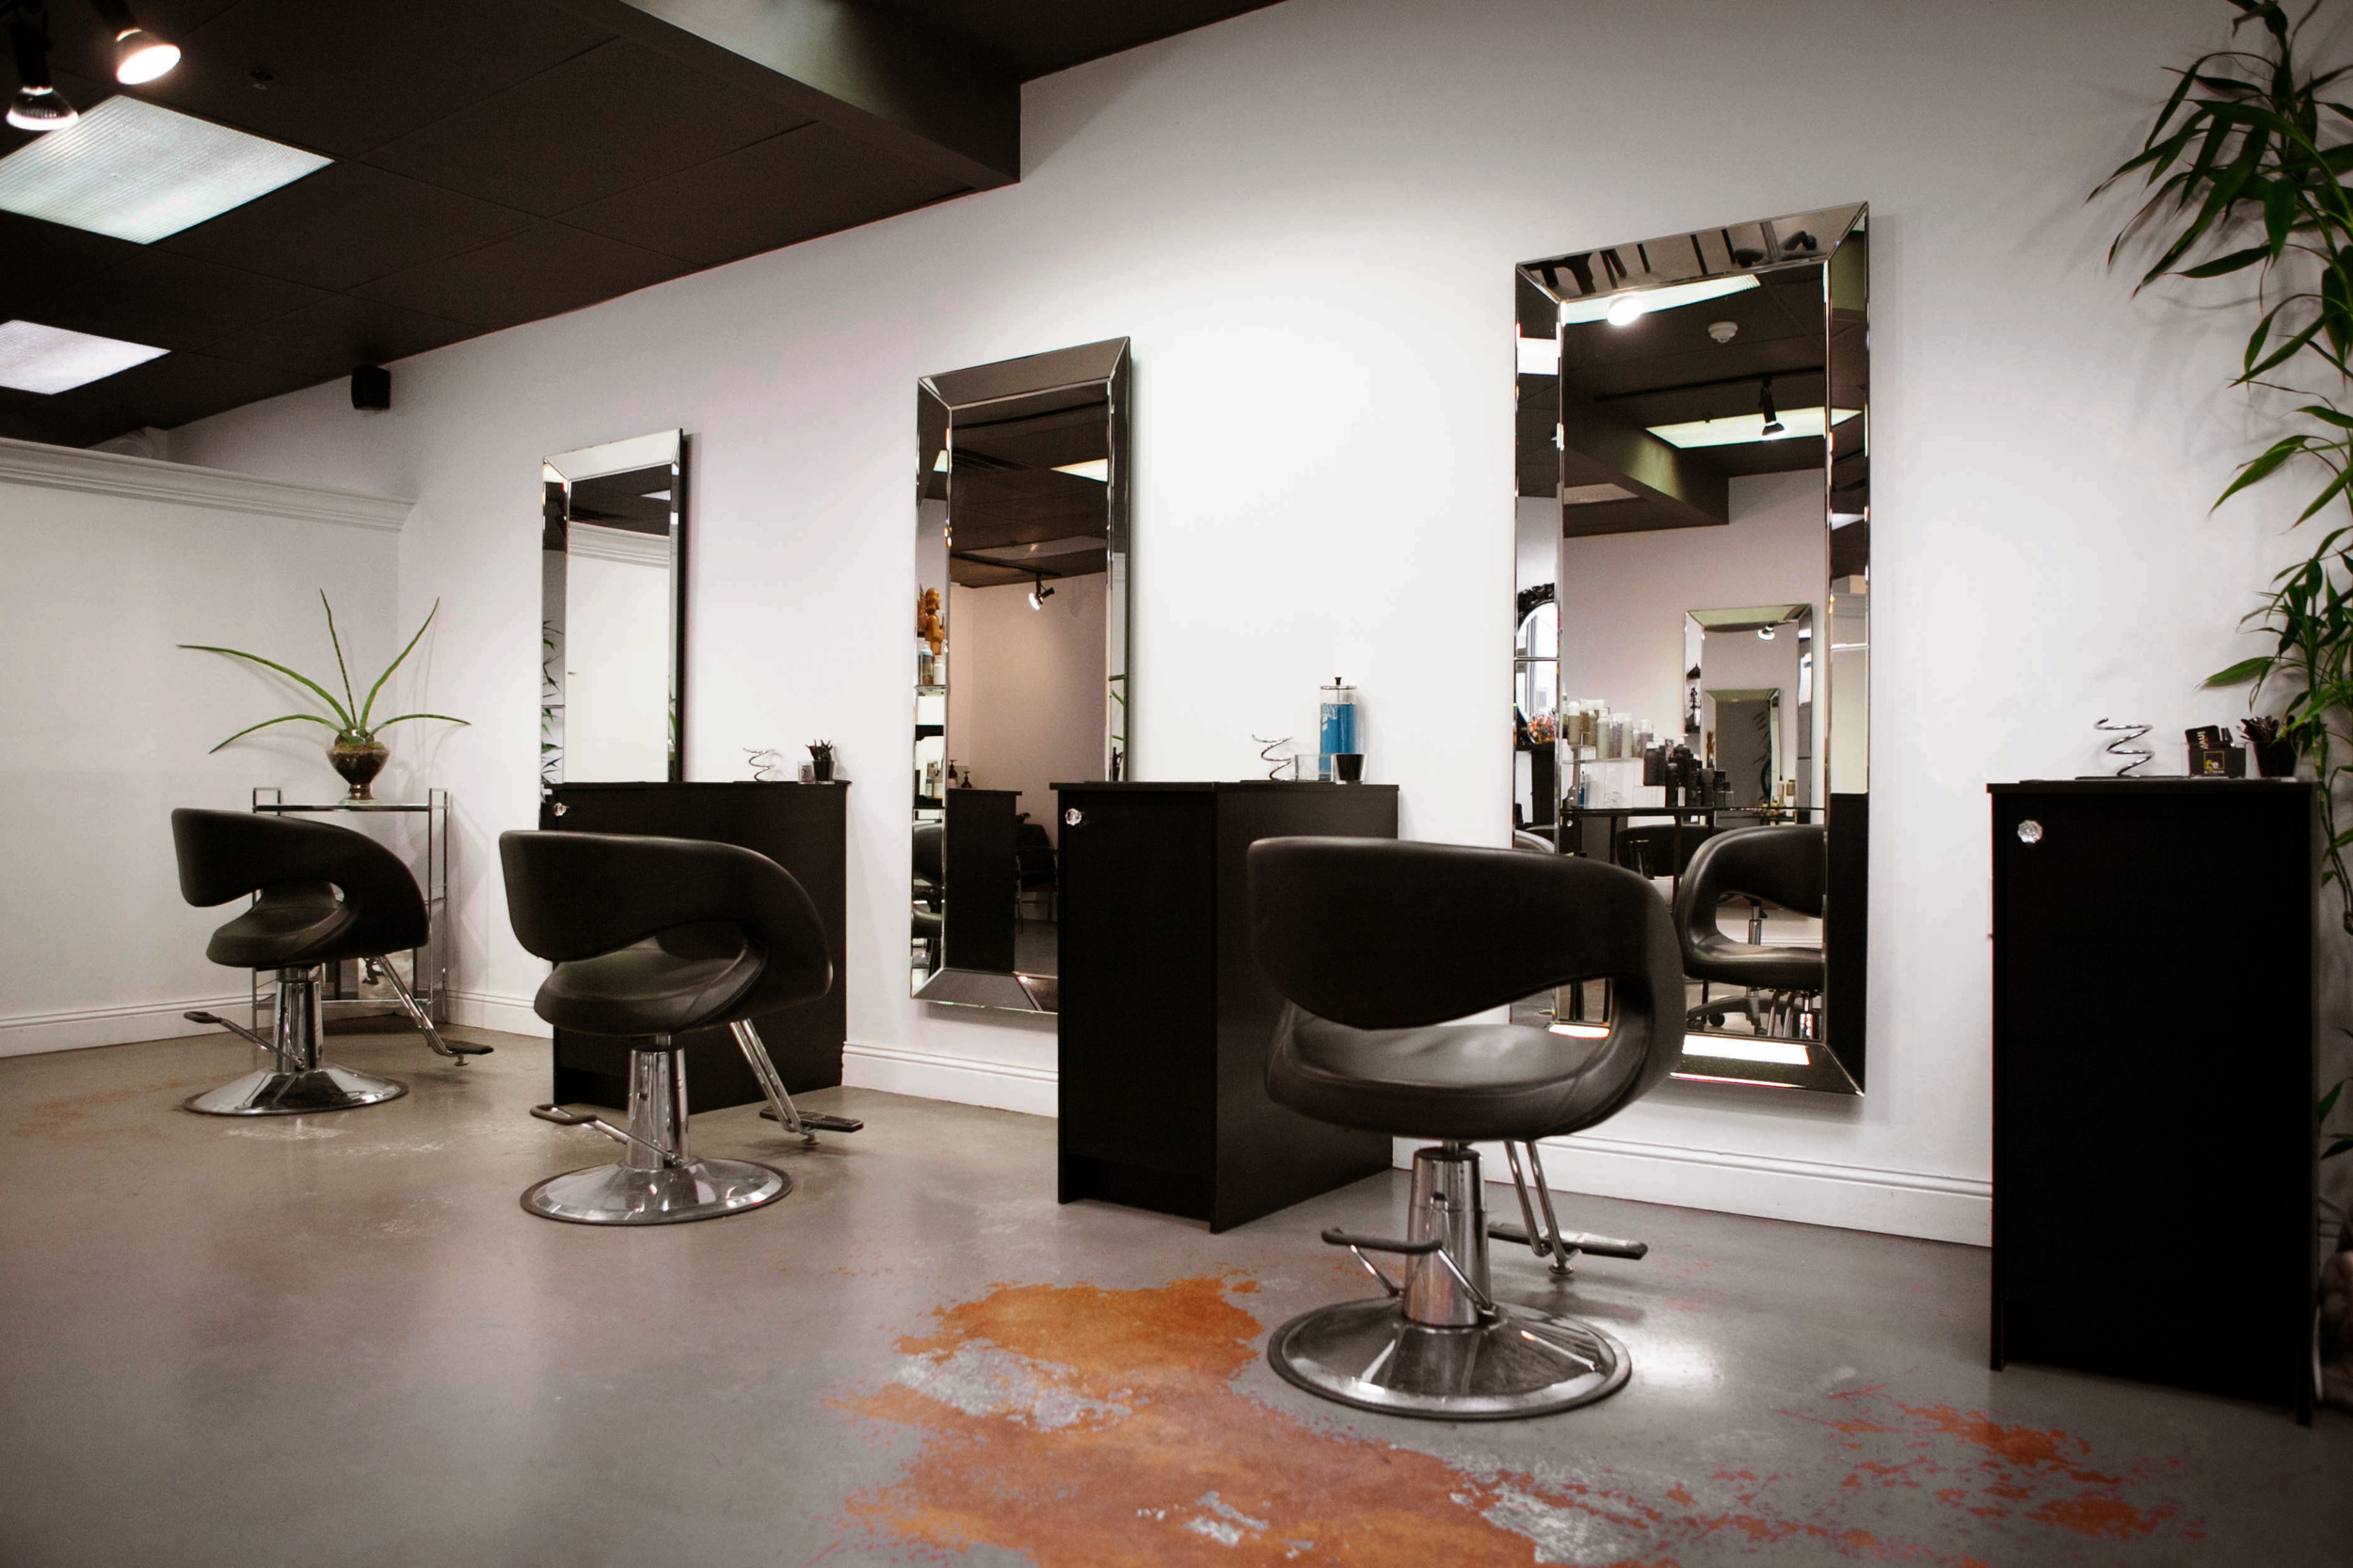 Looking to rent a chair without contract? - Stylist friendly, fully-loaded equipment and space.